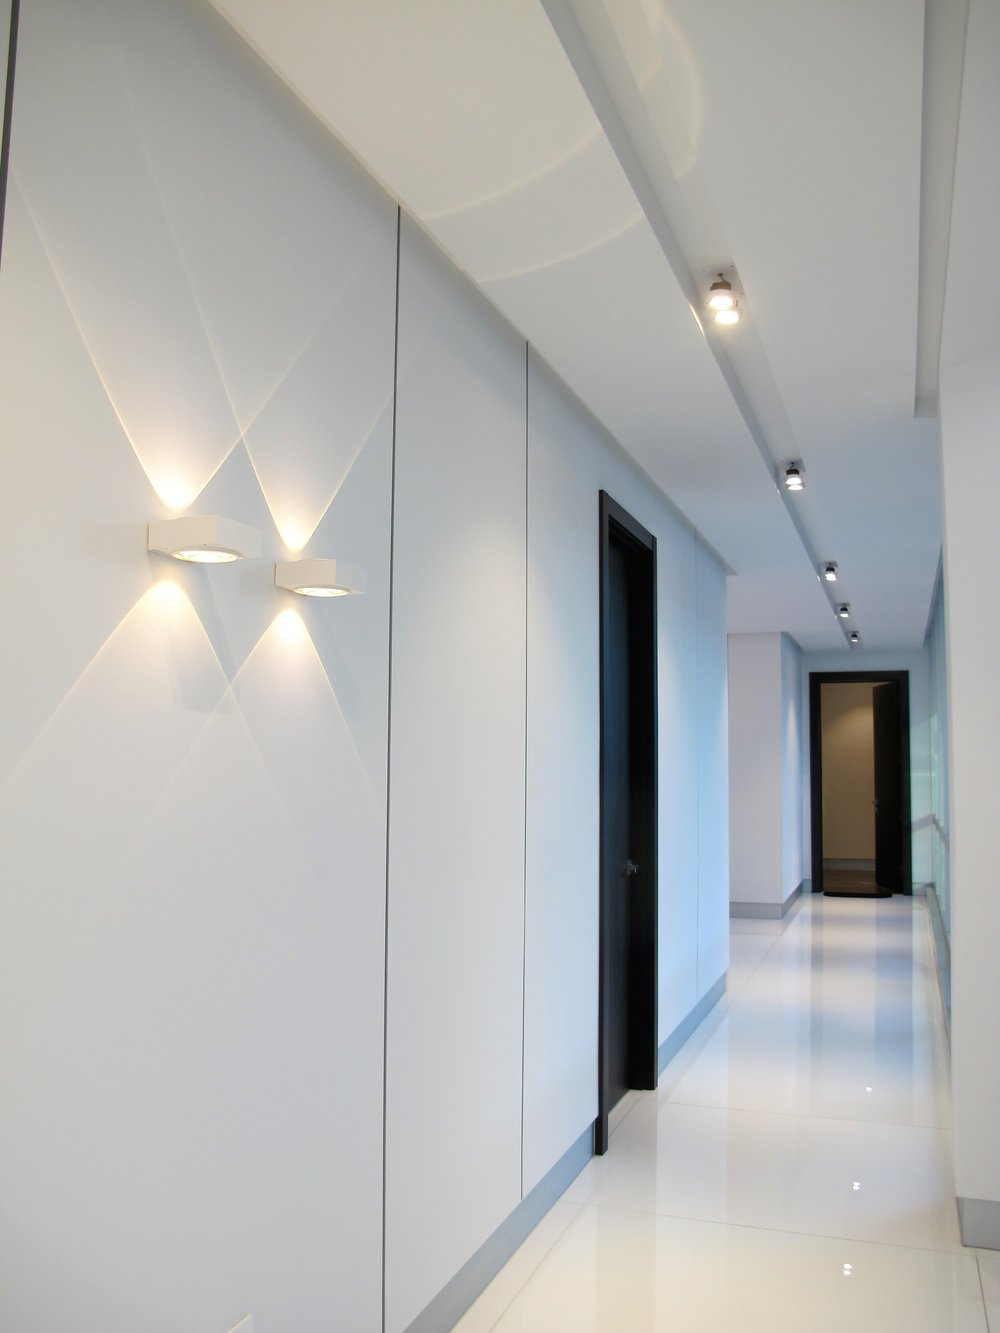 LED WALL SCONCES AND SEMI RECESSED SPOT LED LIGHTS